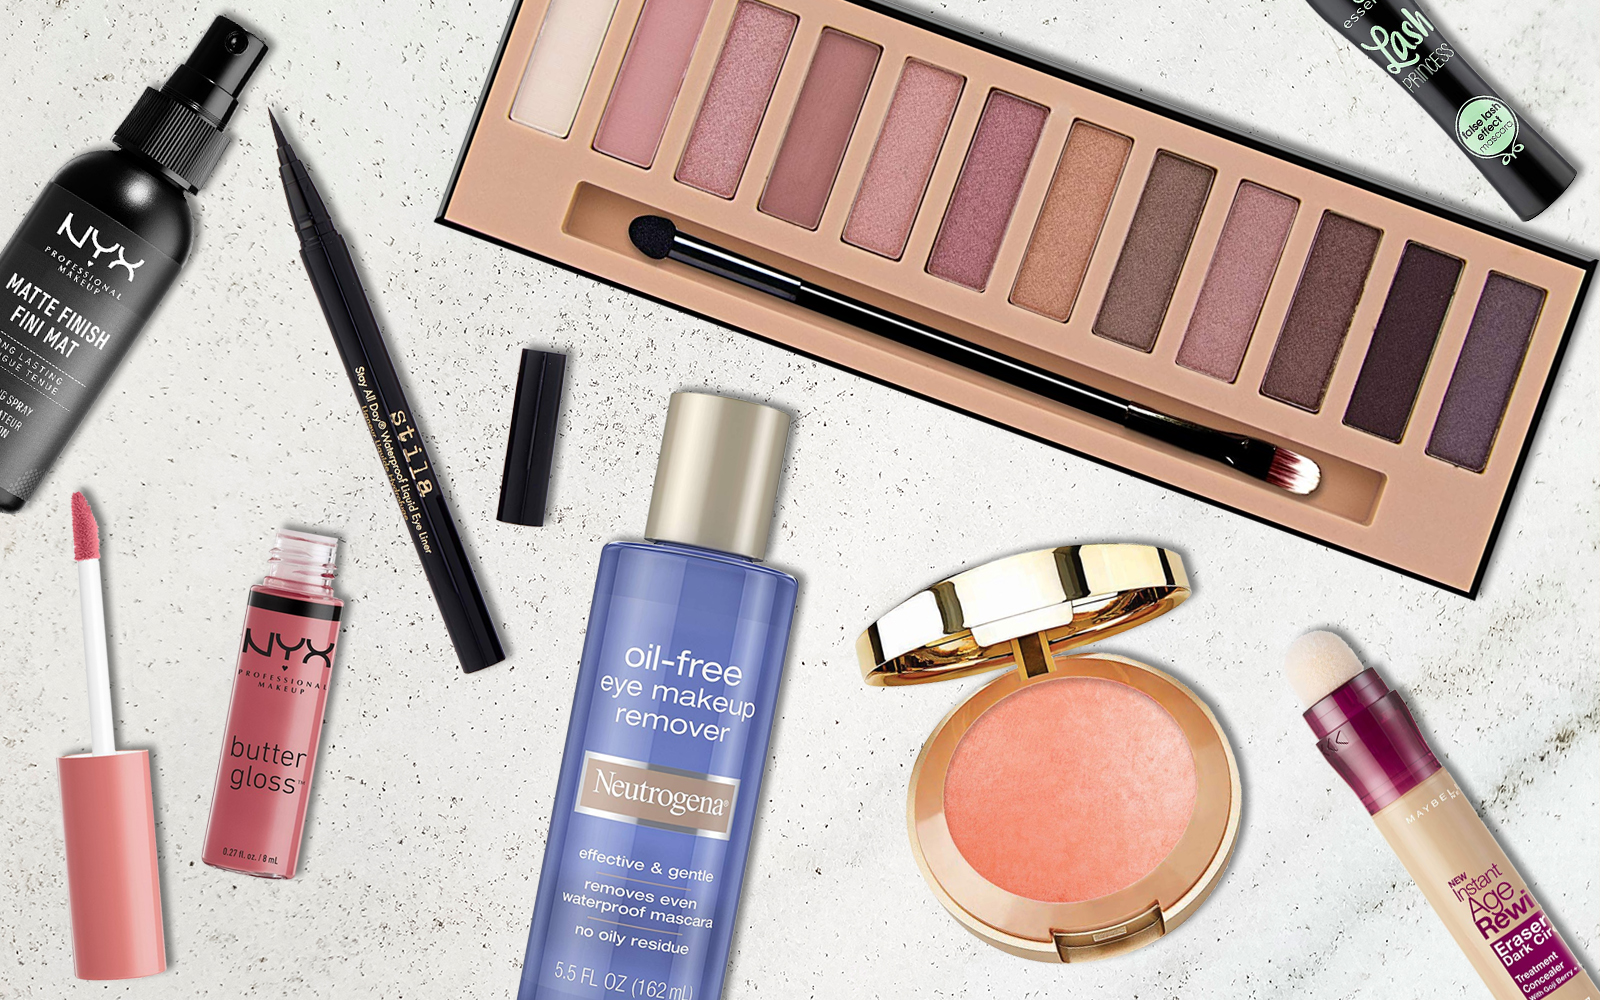 The Best Makeup to Buy on Amazon, According to Reviews